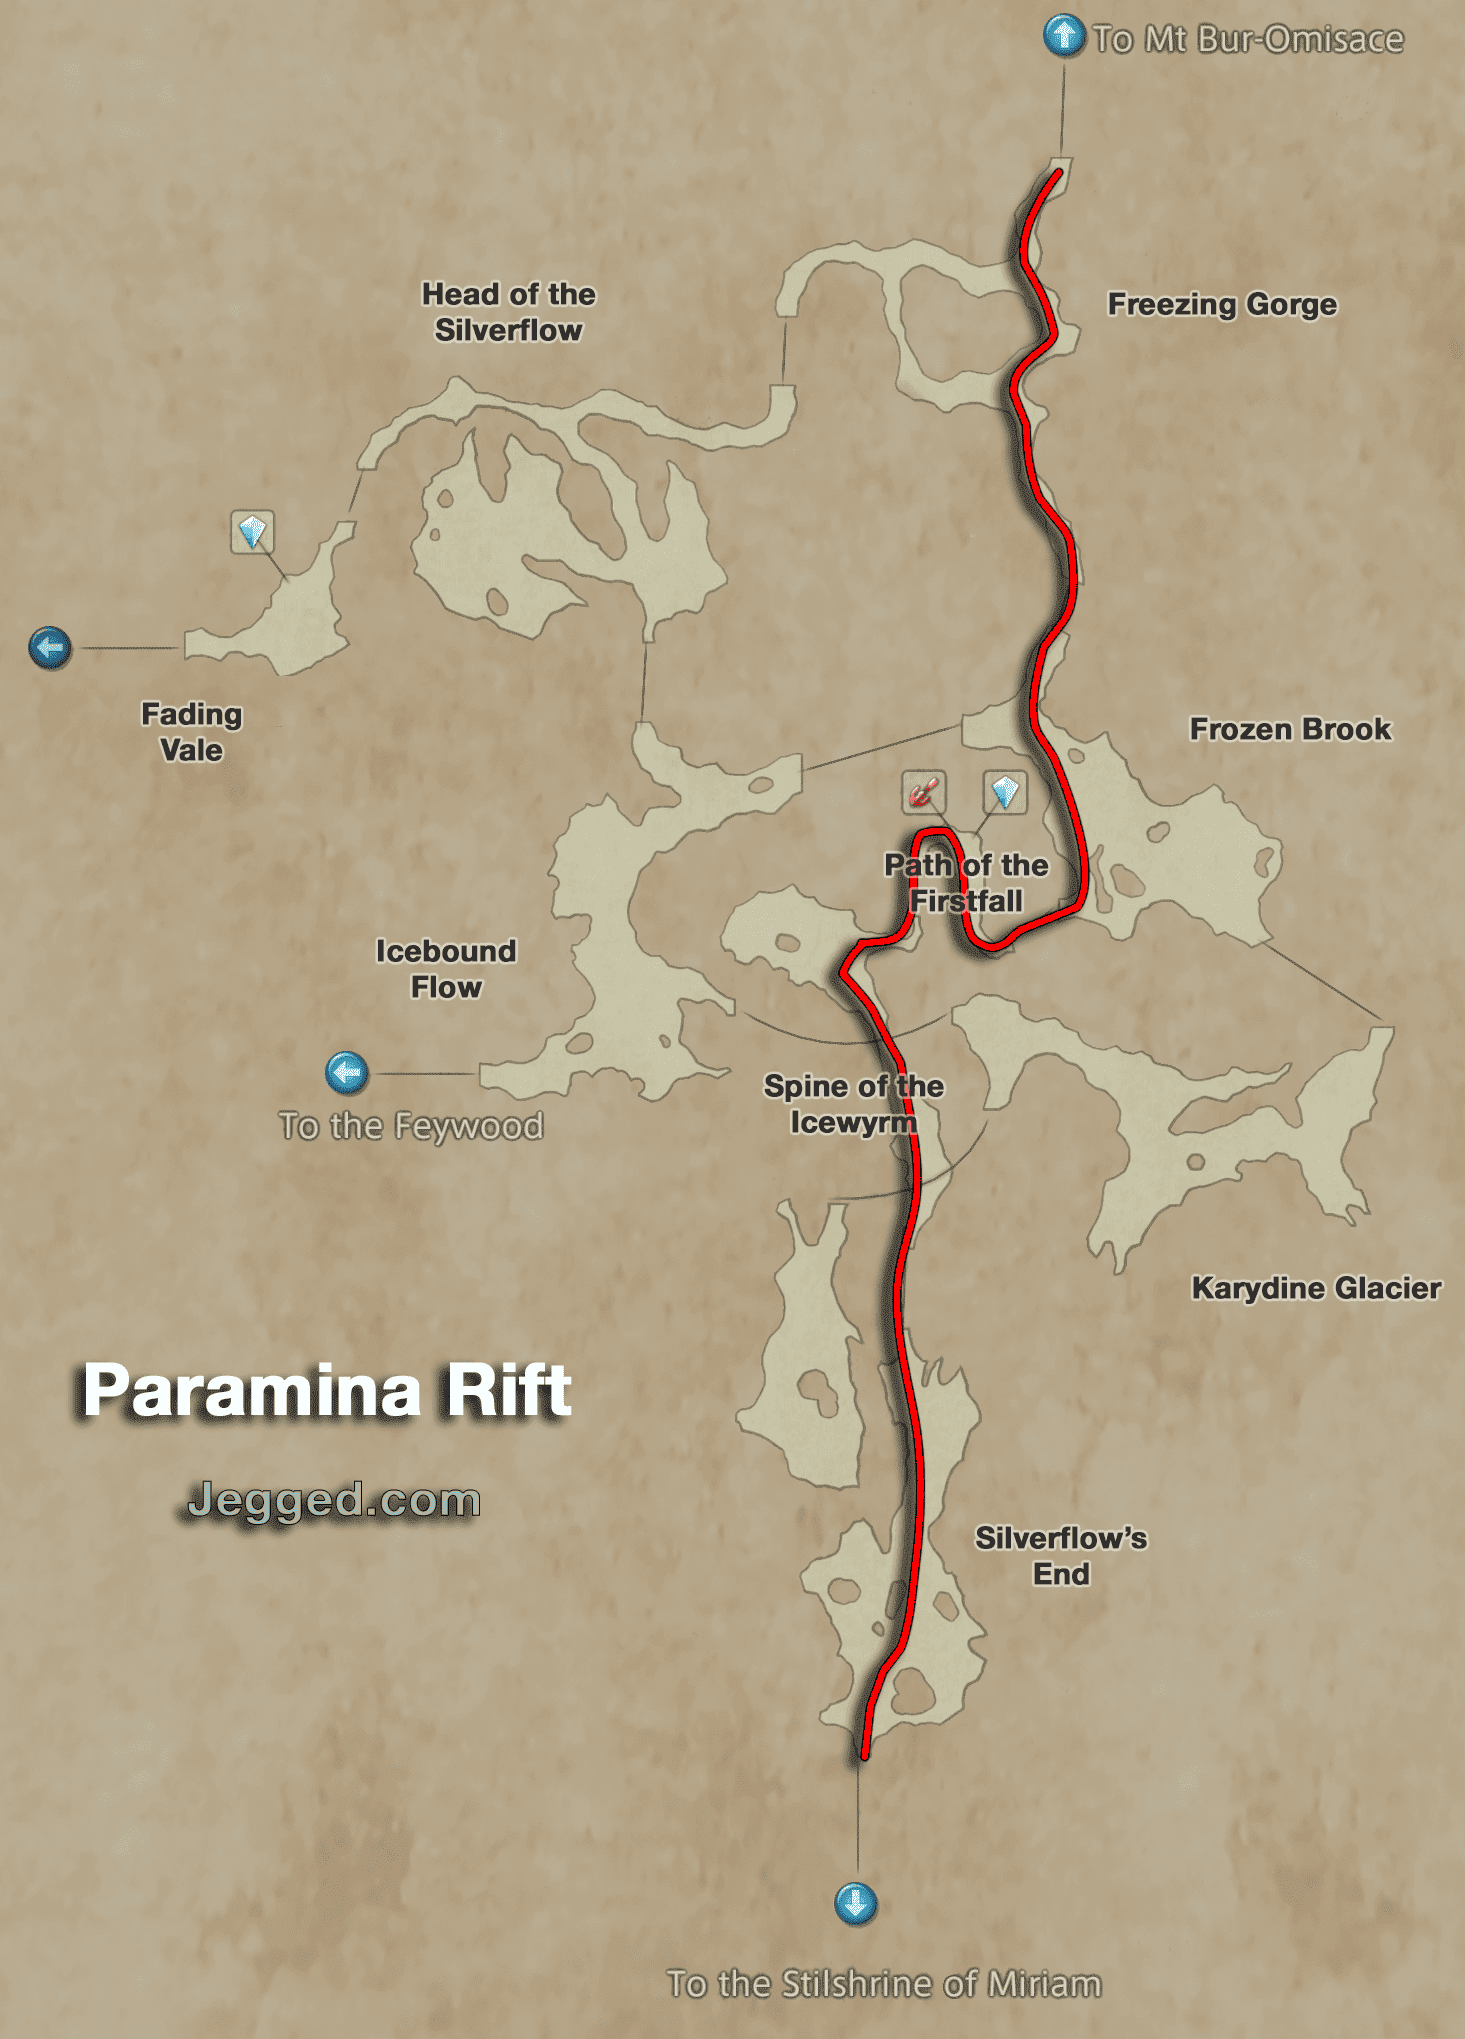 Map of the pathway from Mt Bur-Omisace through the Paramina Rift to the Stilshrine of Miriam